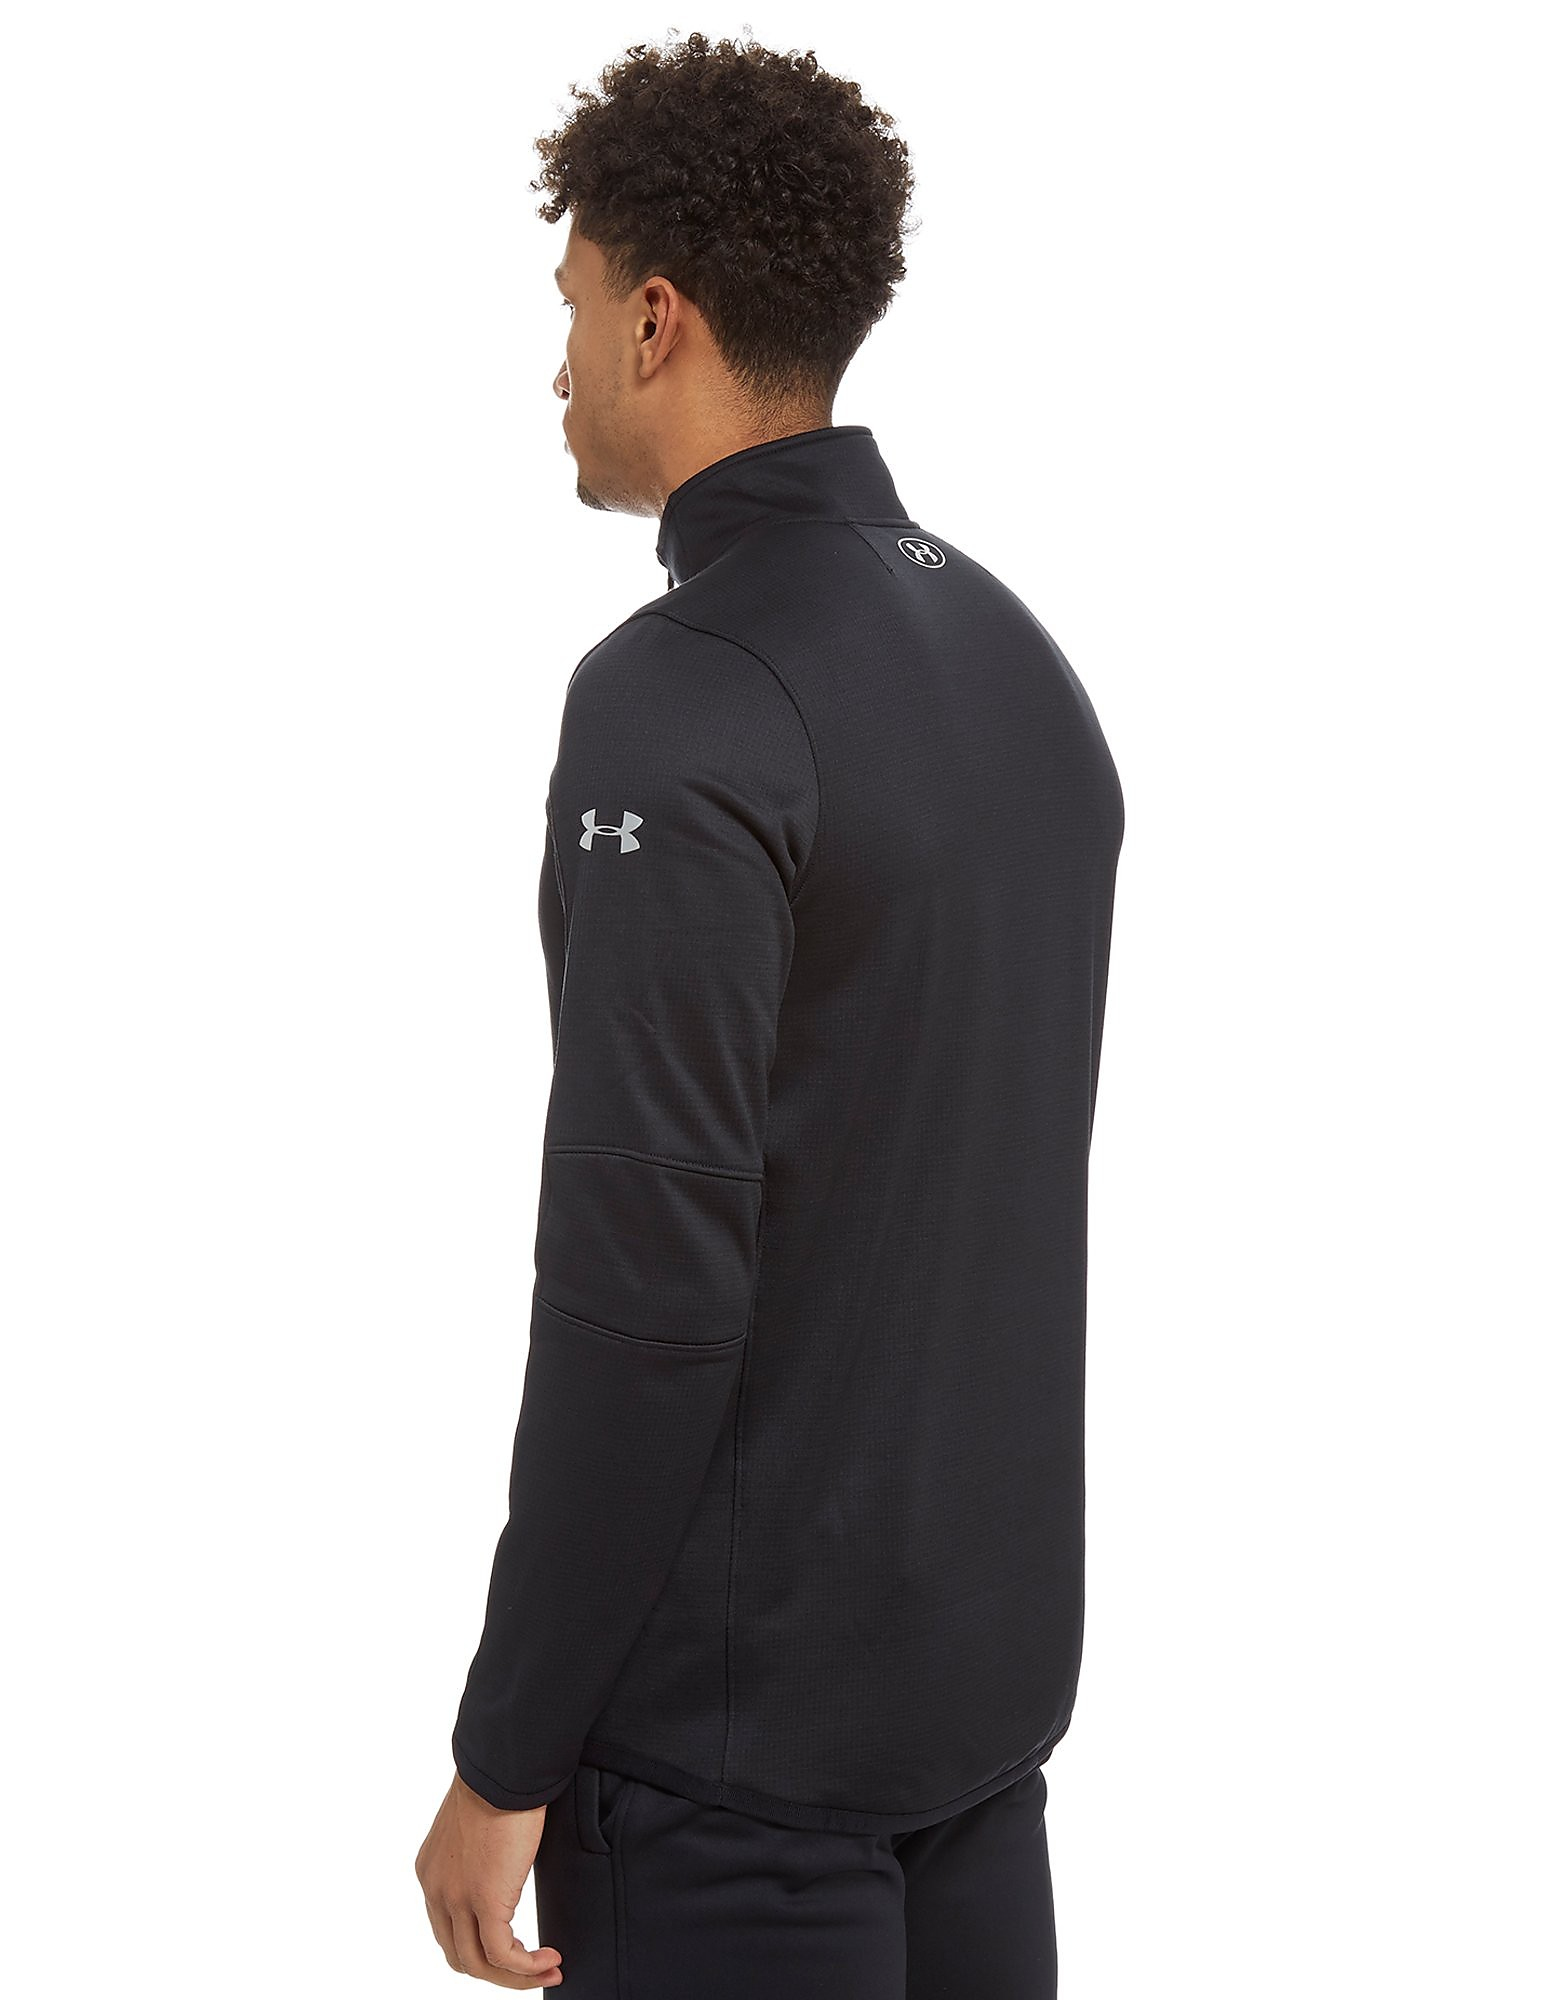 Under Armour Reactor 1/4 Zip Sweatshirt